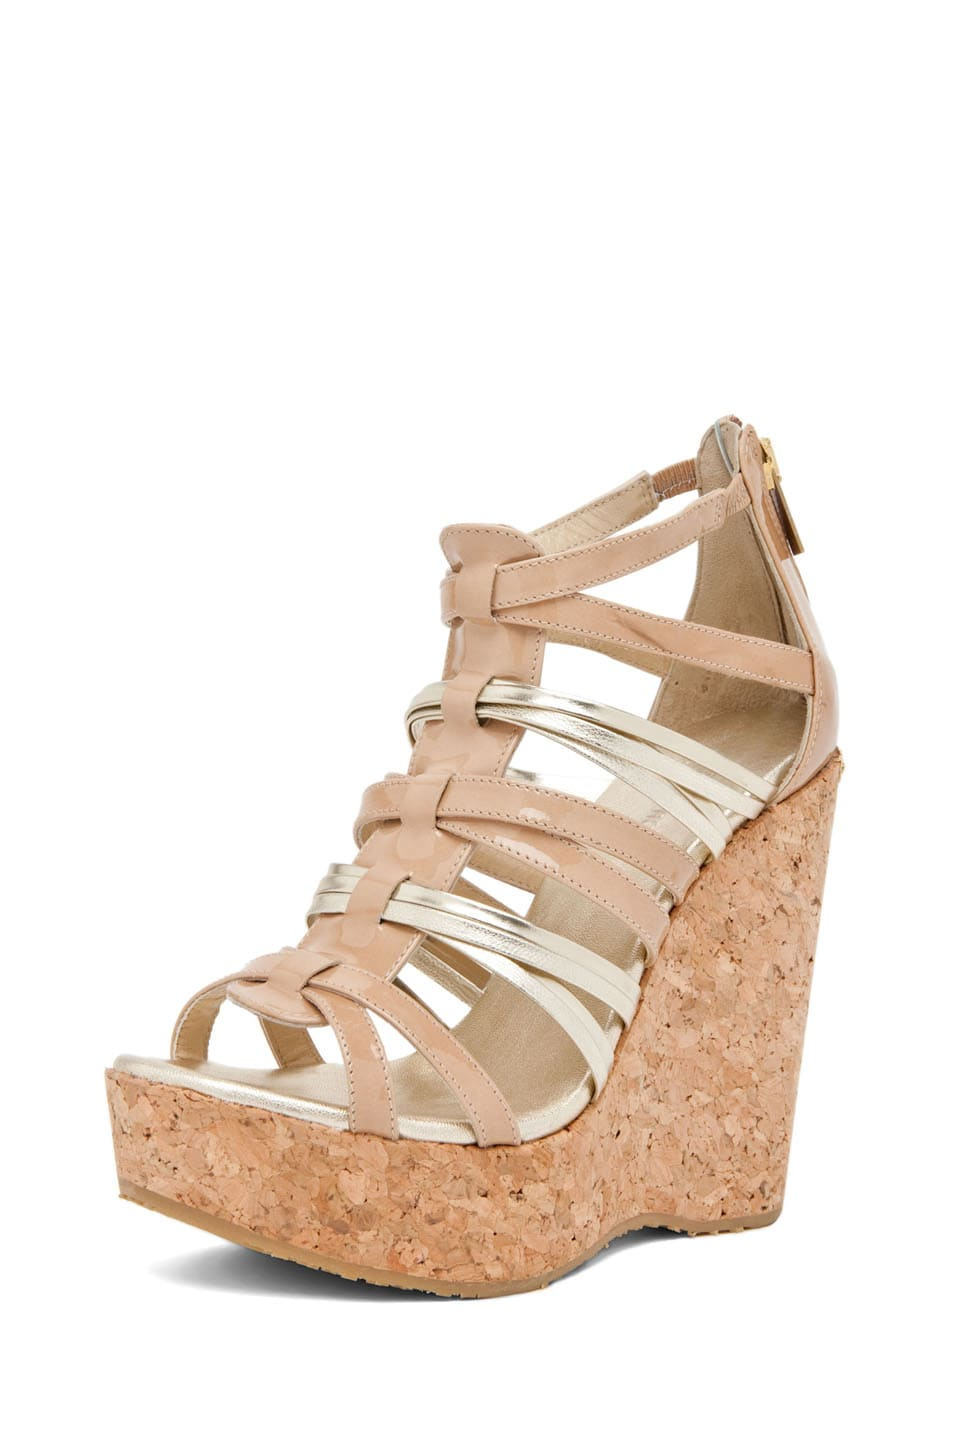 Image 2 of Jimmy Choo Pekabo Cork Wedge Sandal in Nude